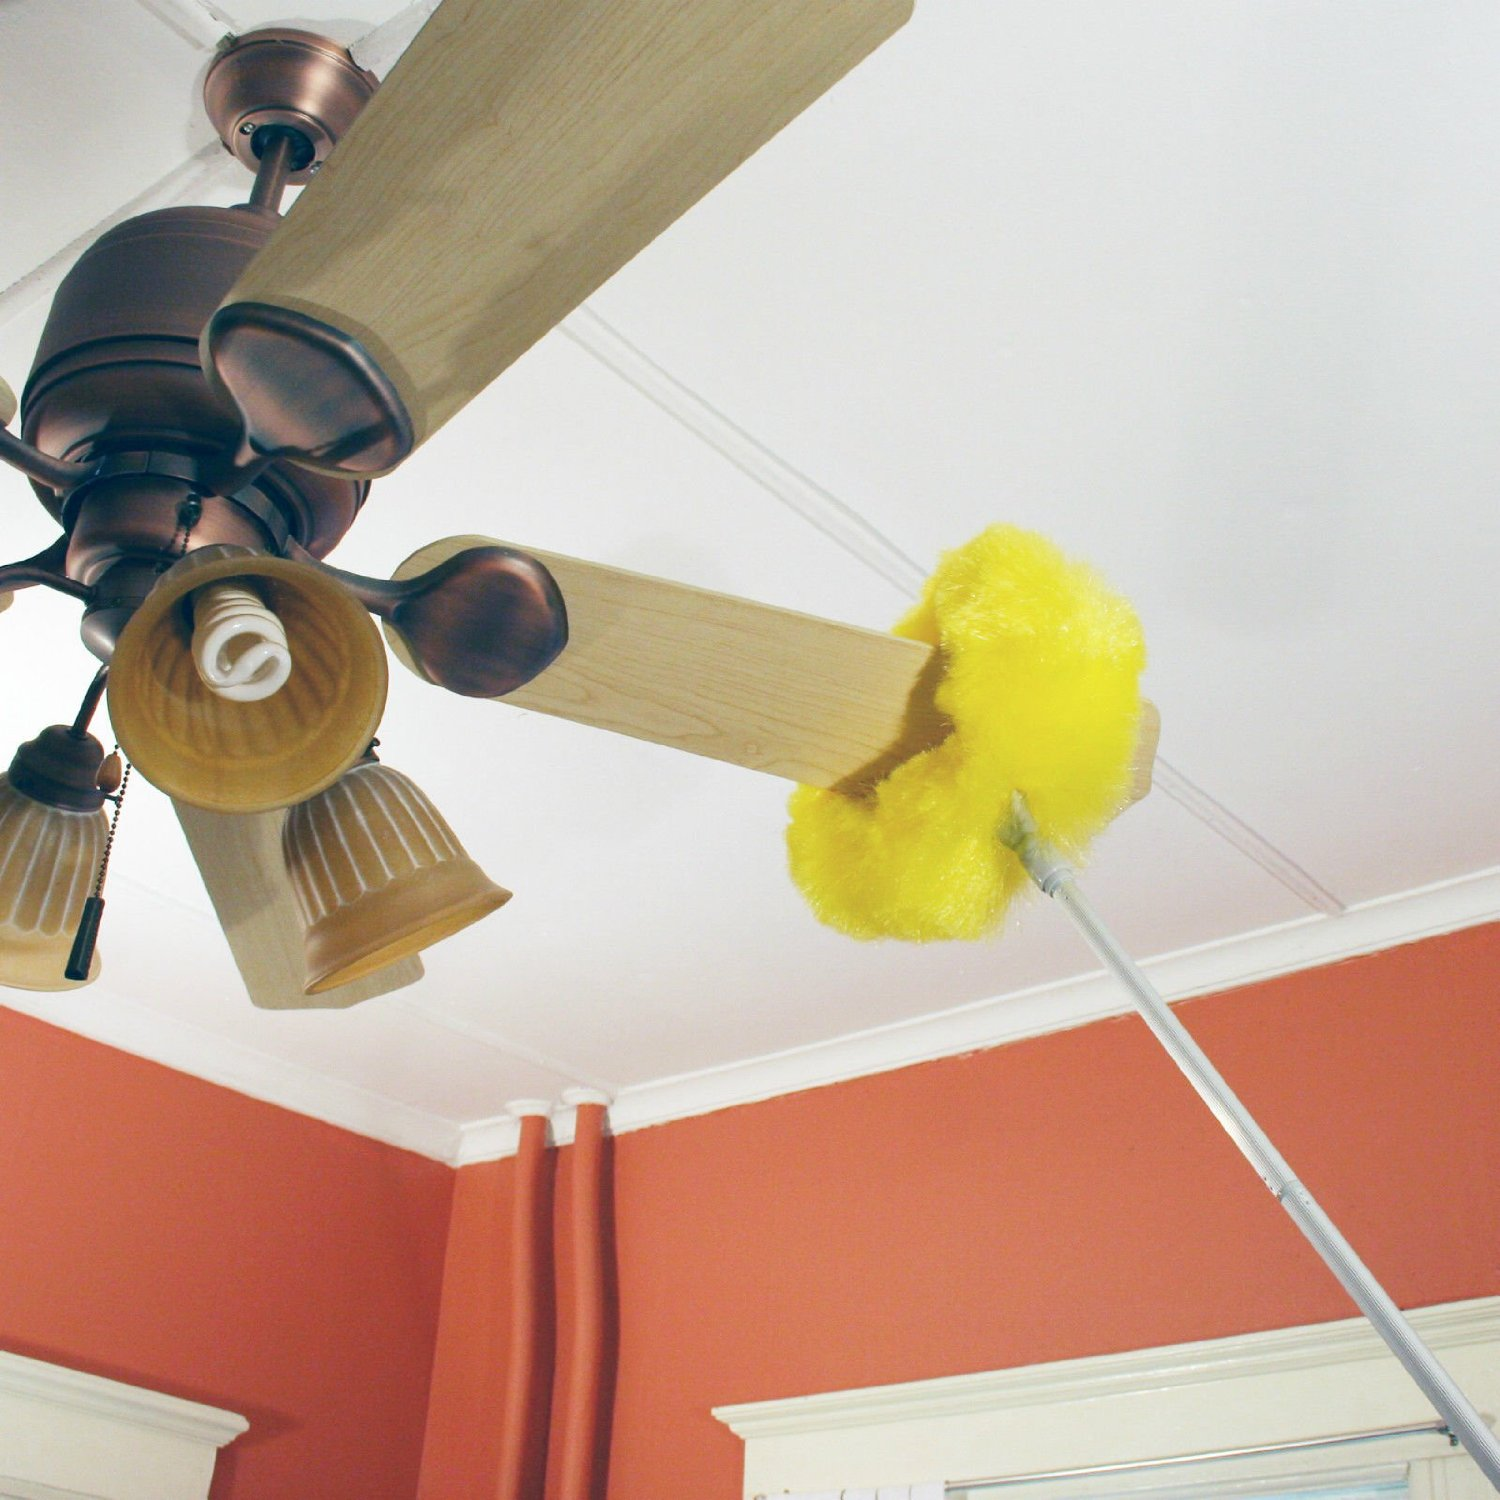 Hampton direct ceiling fan duster electromagnetic 47 reach tanga mozeypictures Choice Image